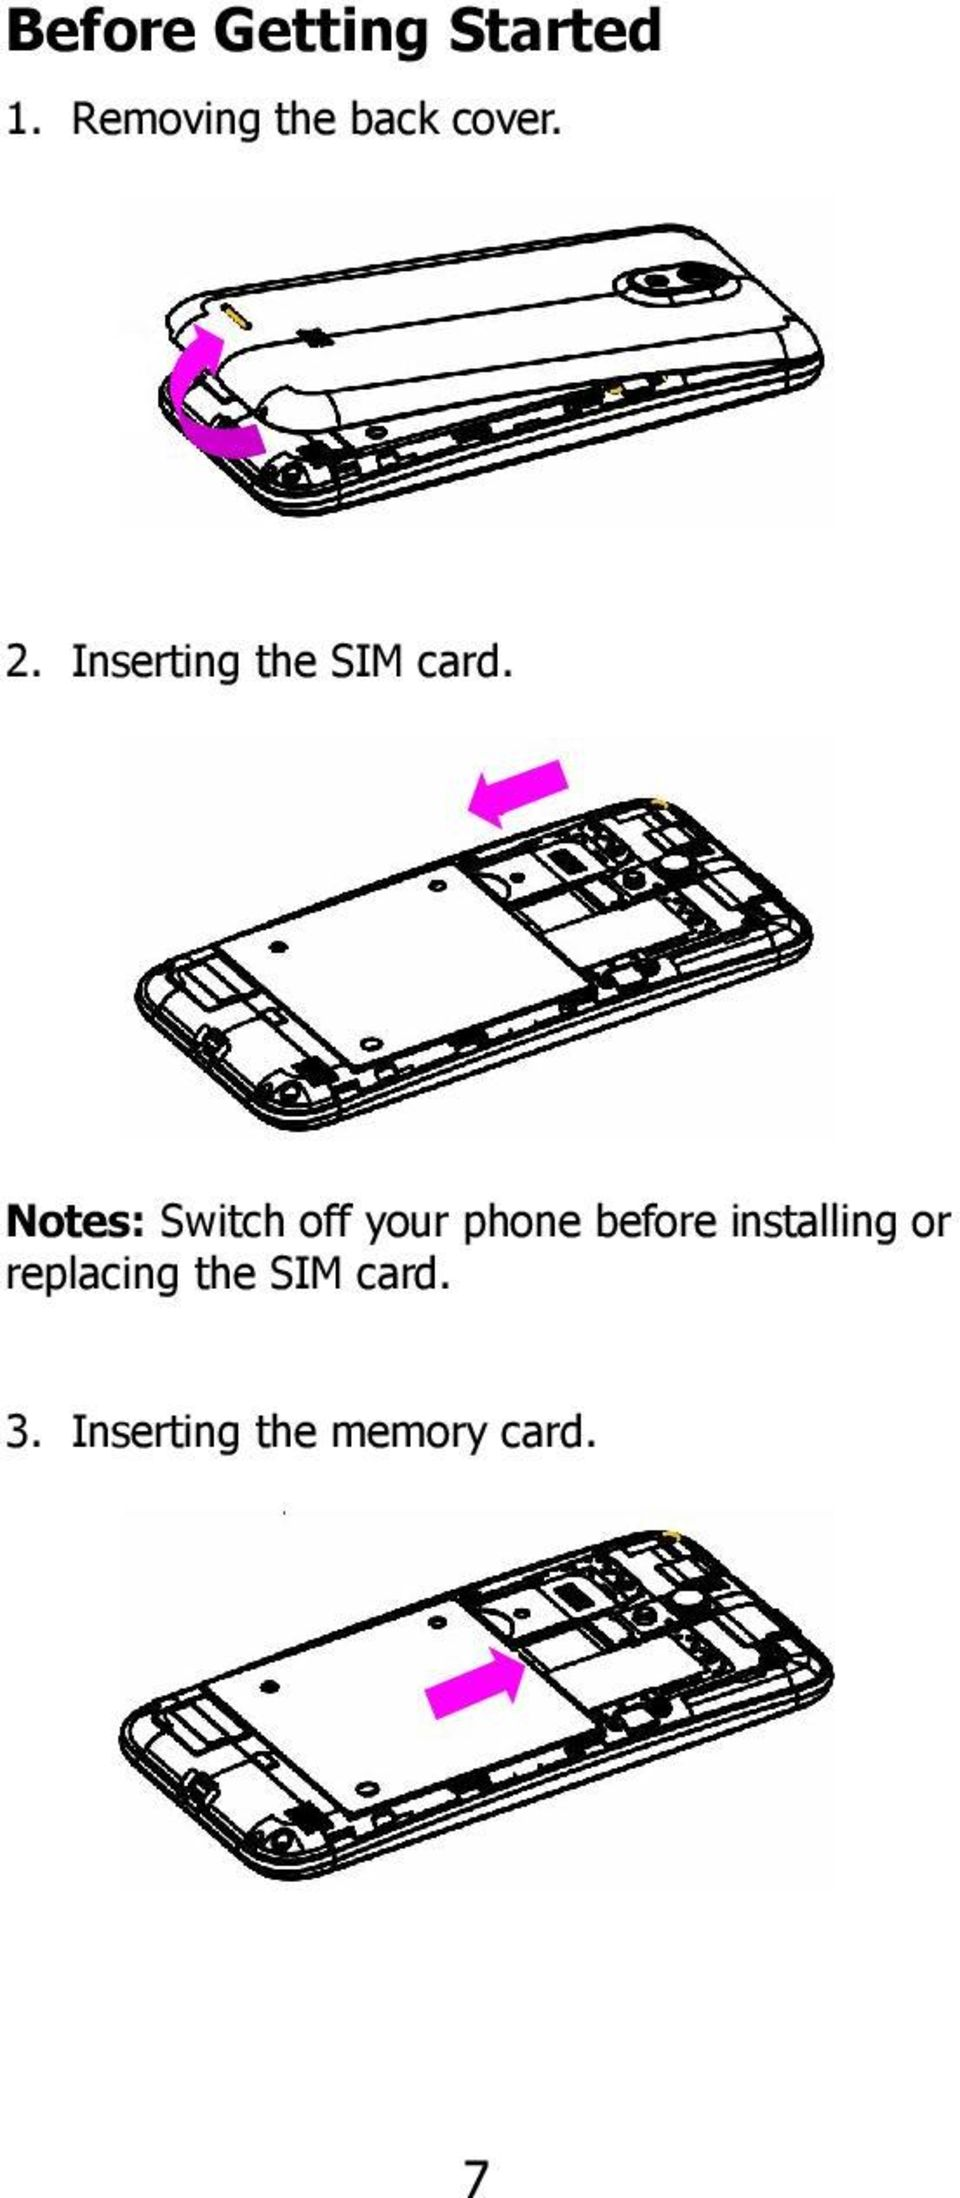 Inserting the SIM card.